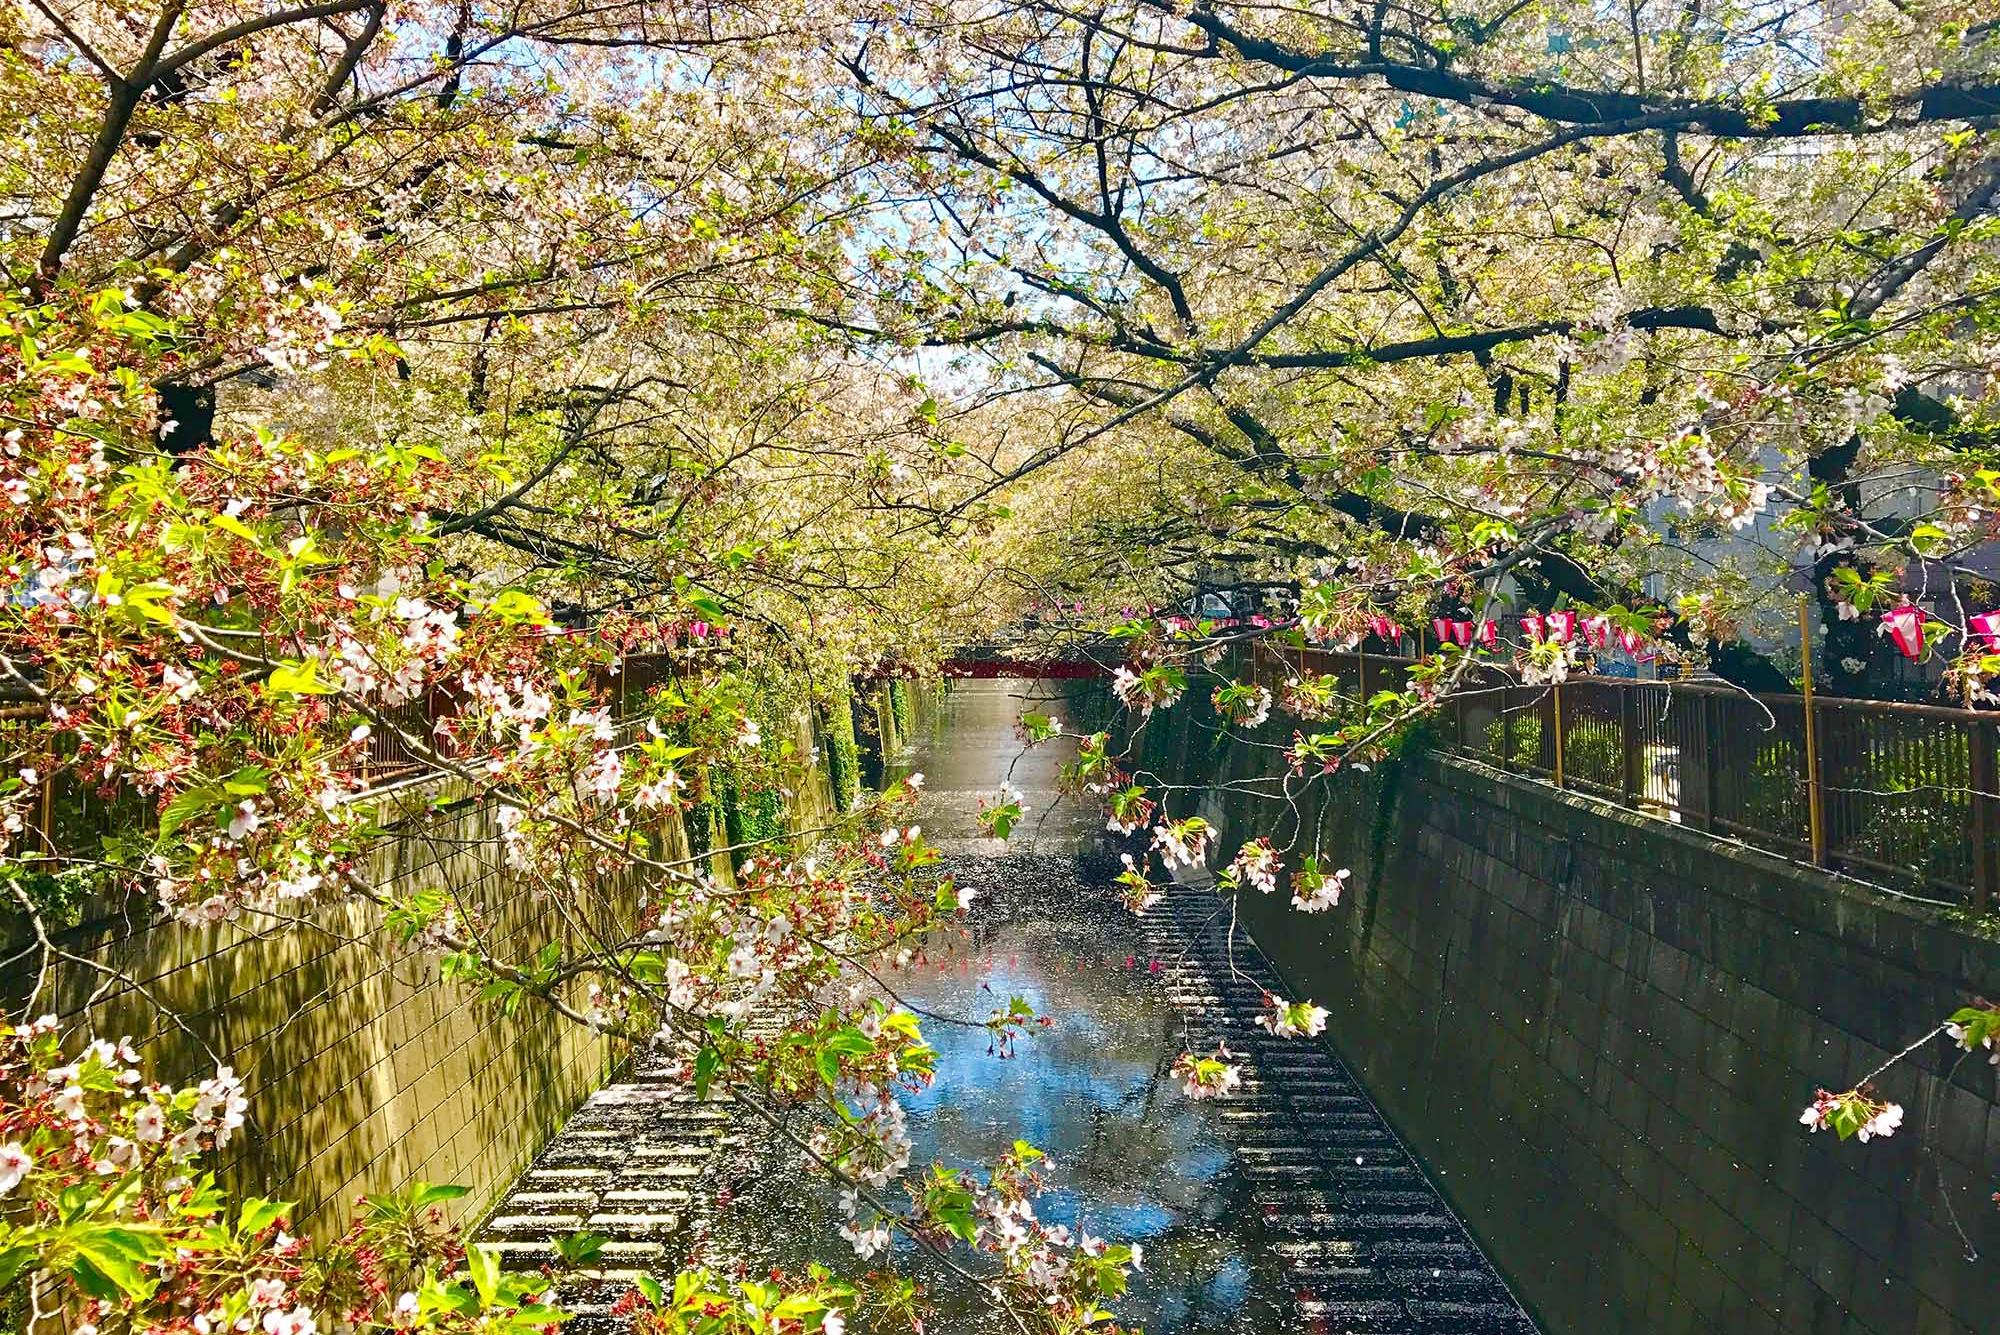 View of the cherry blossoms by a stream in Tokyo on a sunny day.